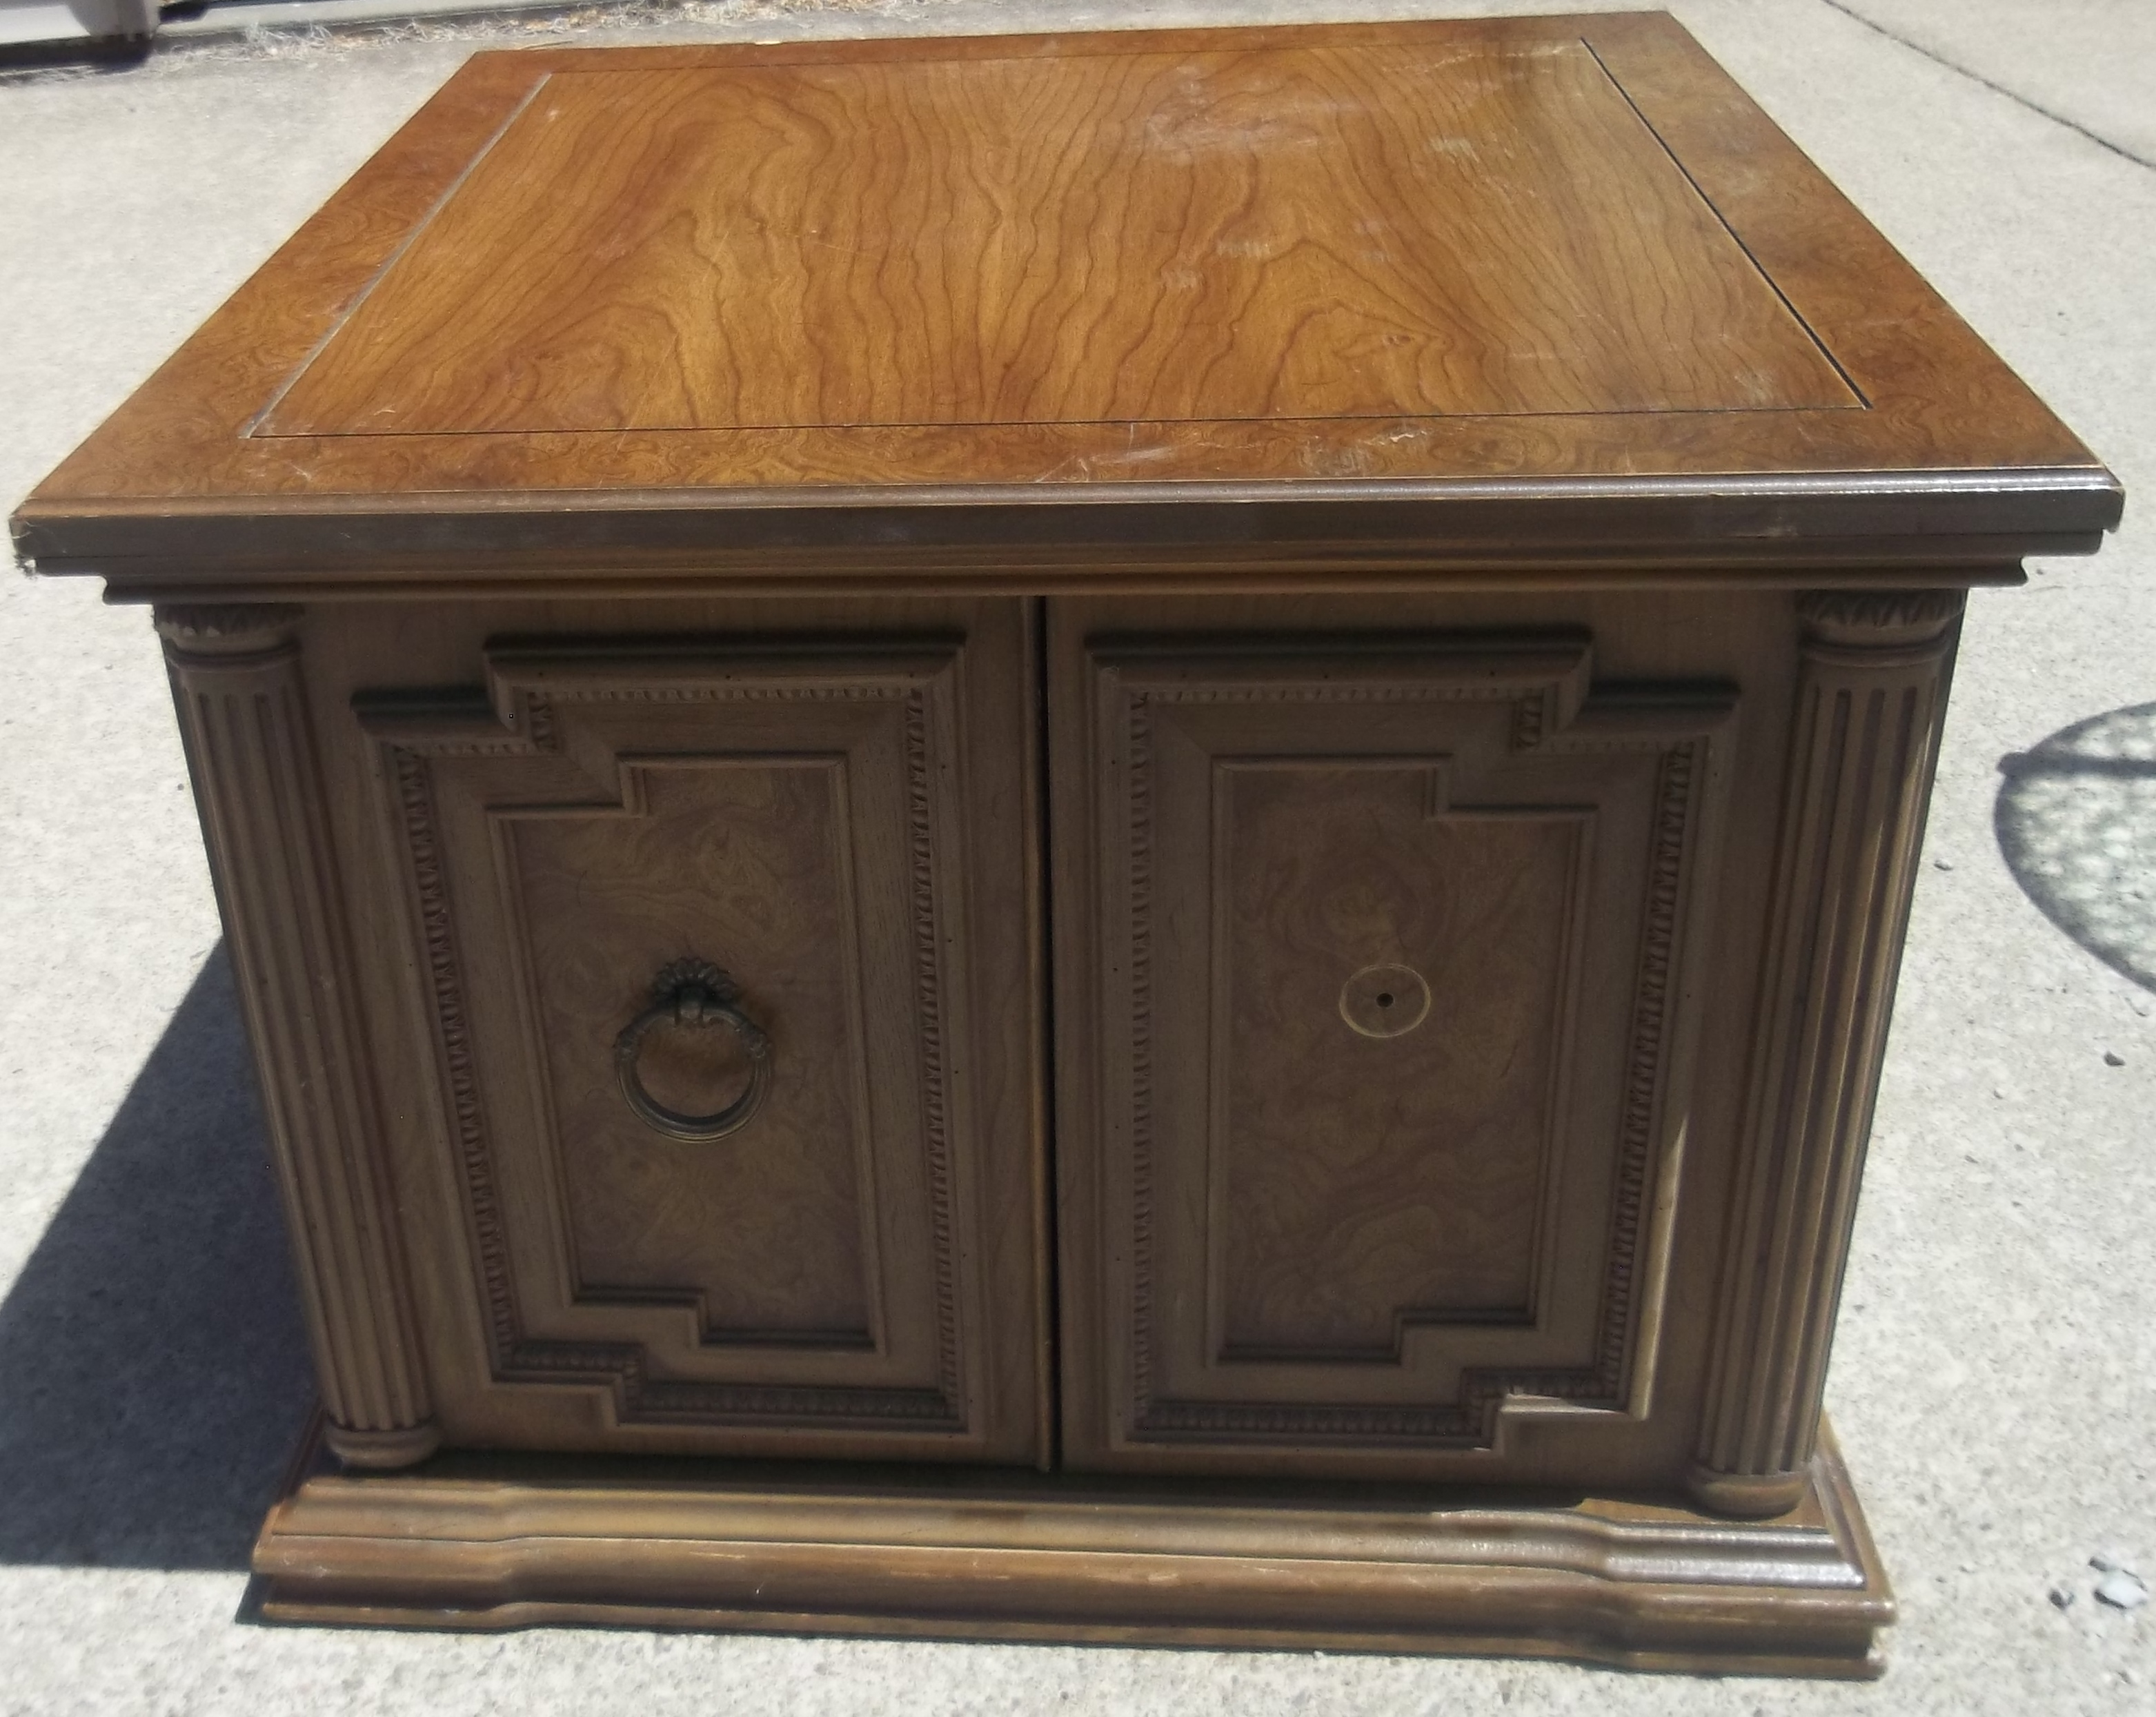 classy antique round end tables with storage popular home interior furniture living room vintage design broken pulls for awesome family decorating table drawer etsy console accent